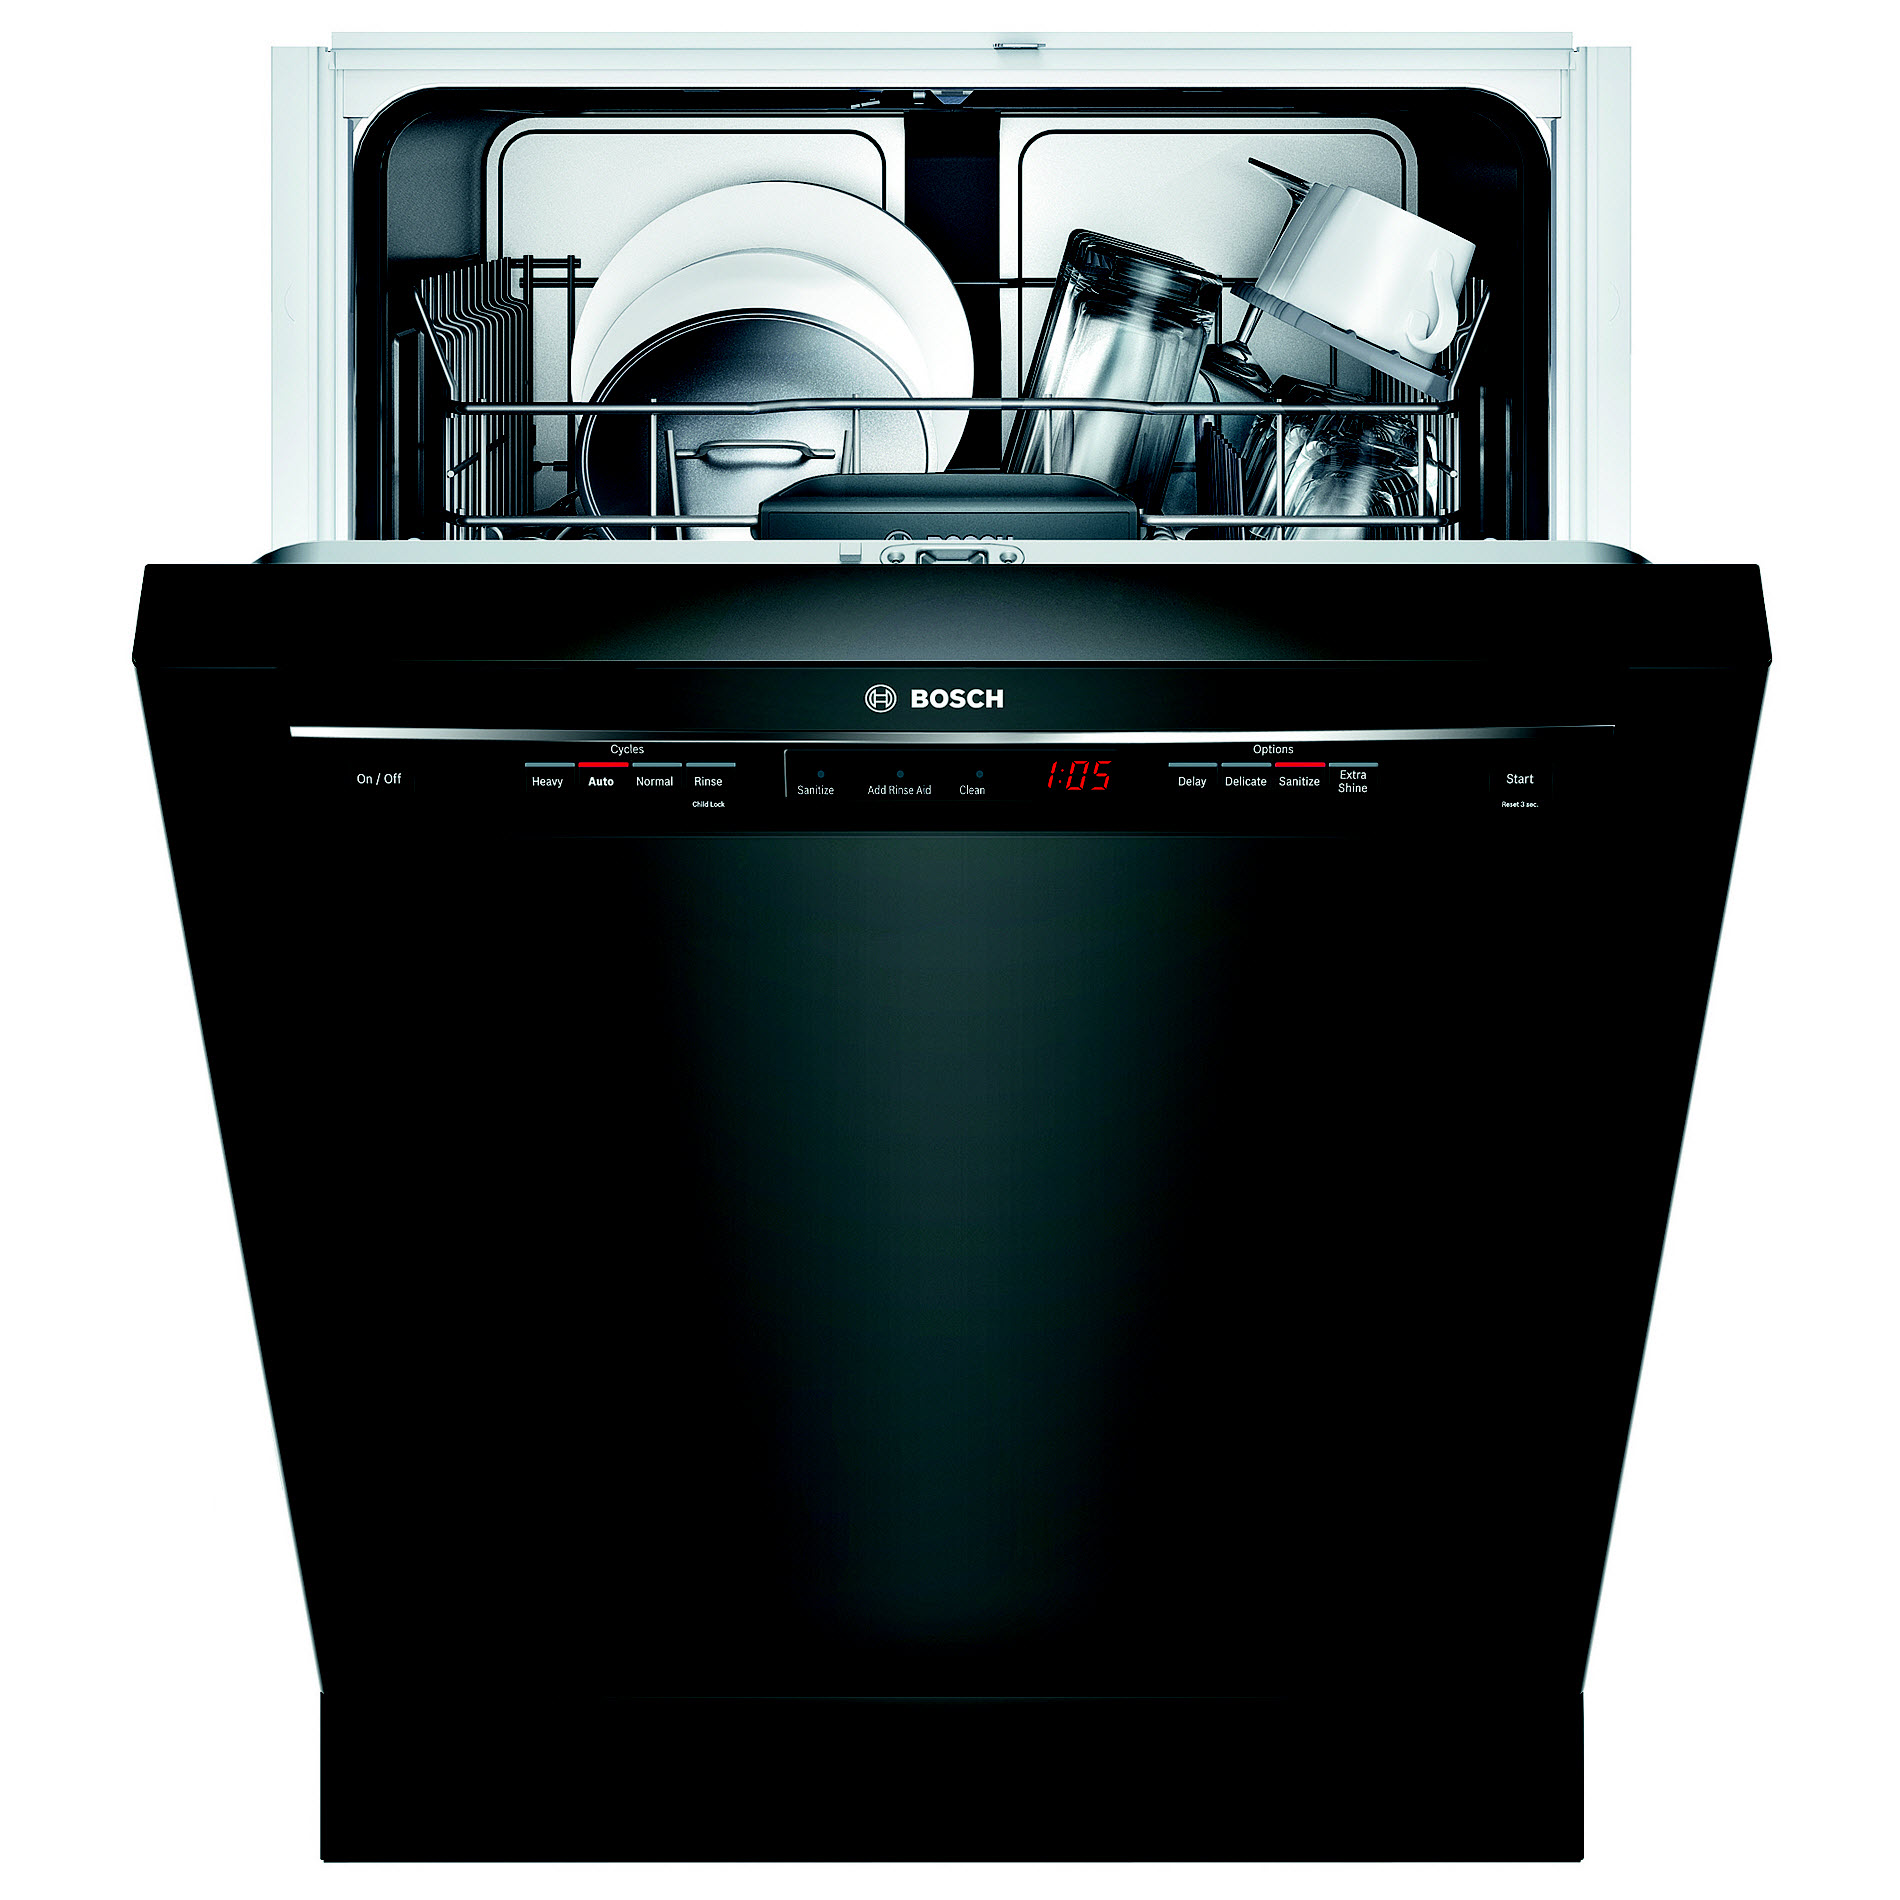 "Bosch SHE53T56UC 24"" 300 Series Built-In Dishwasher - Black"